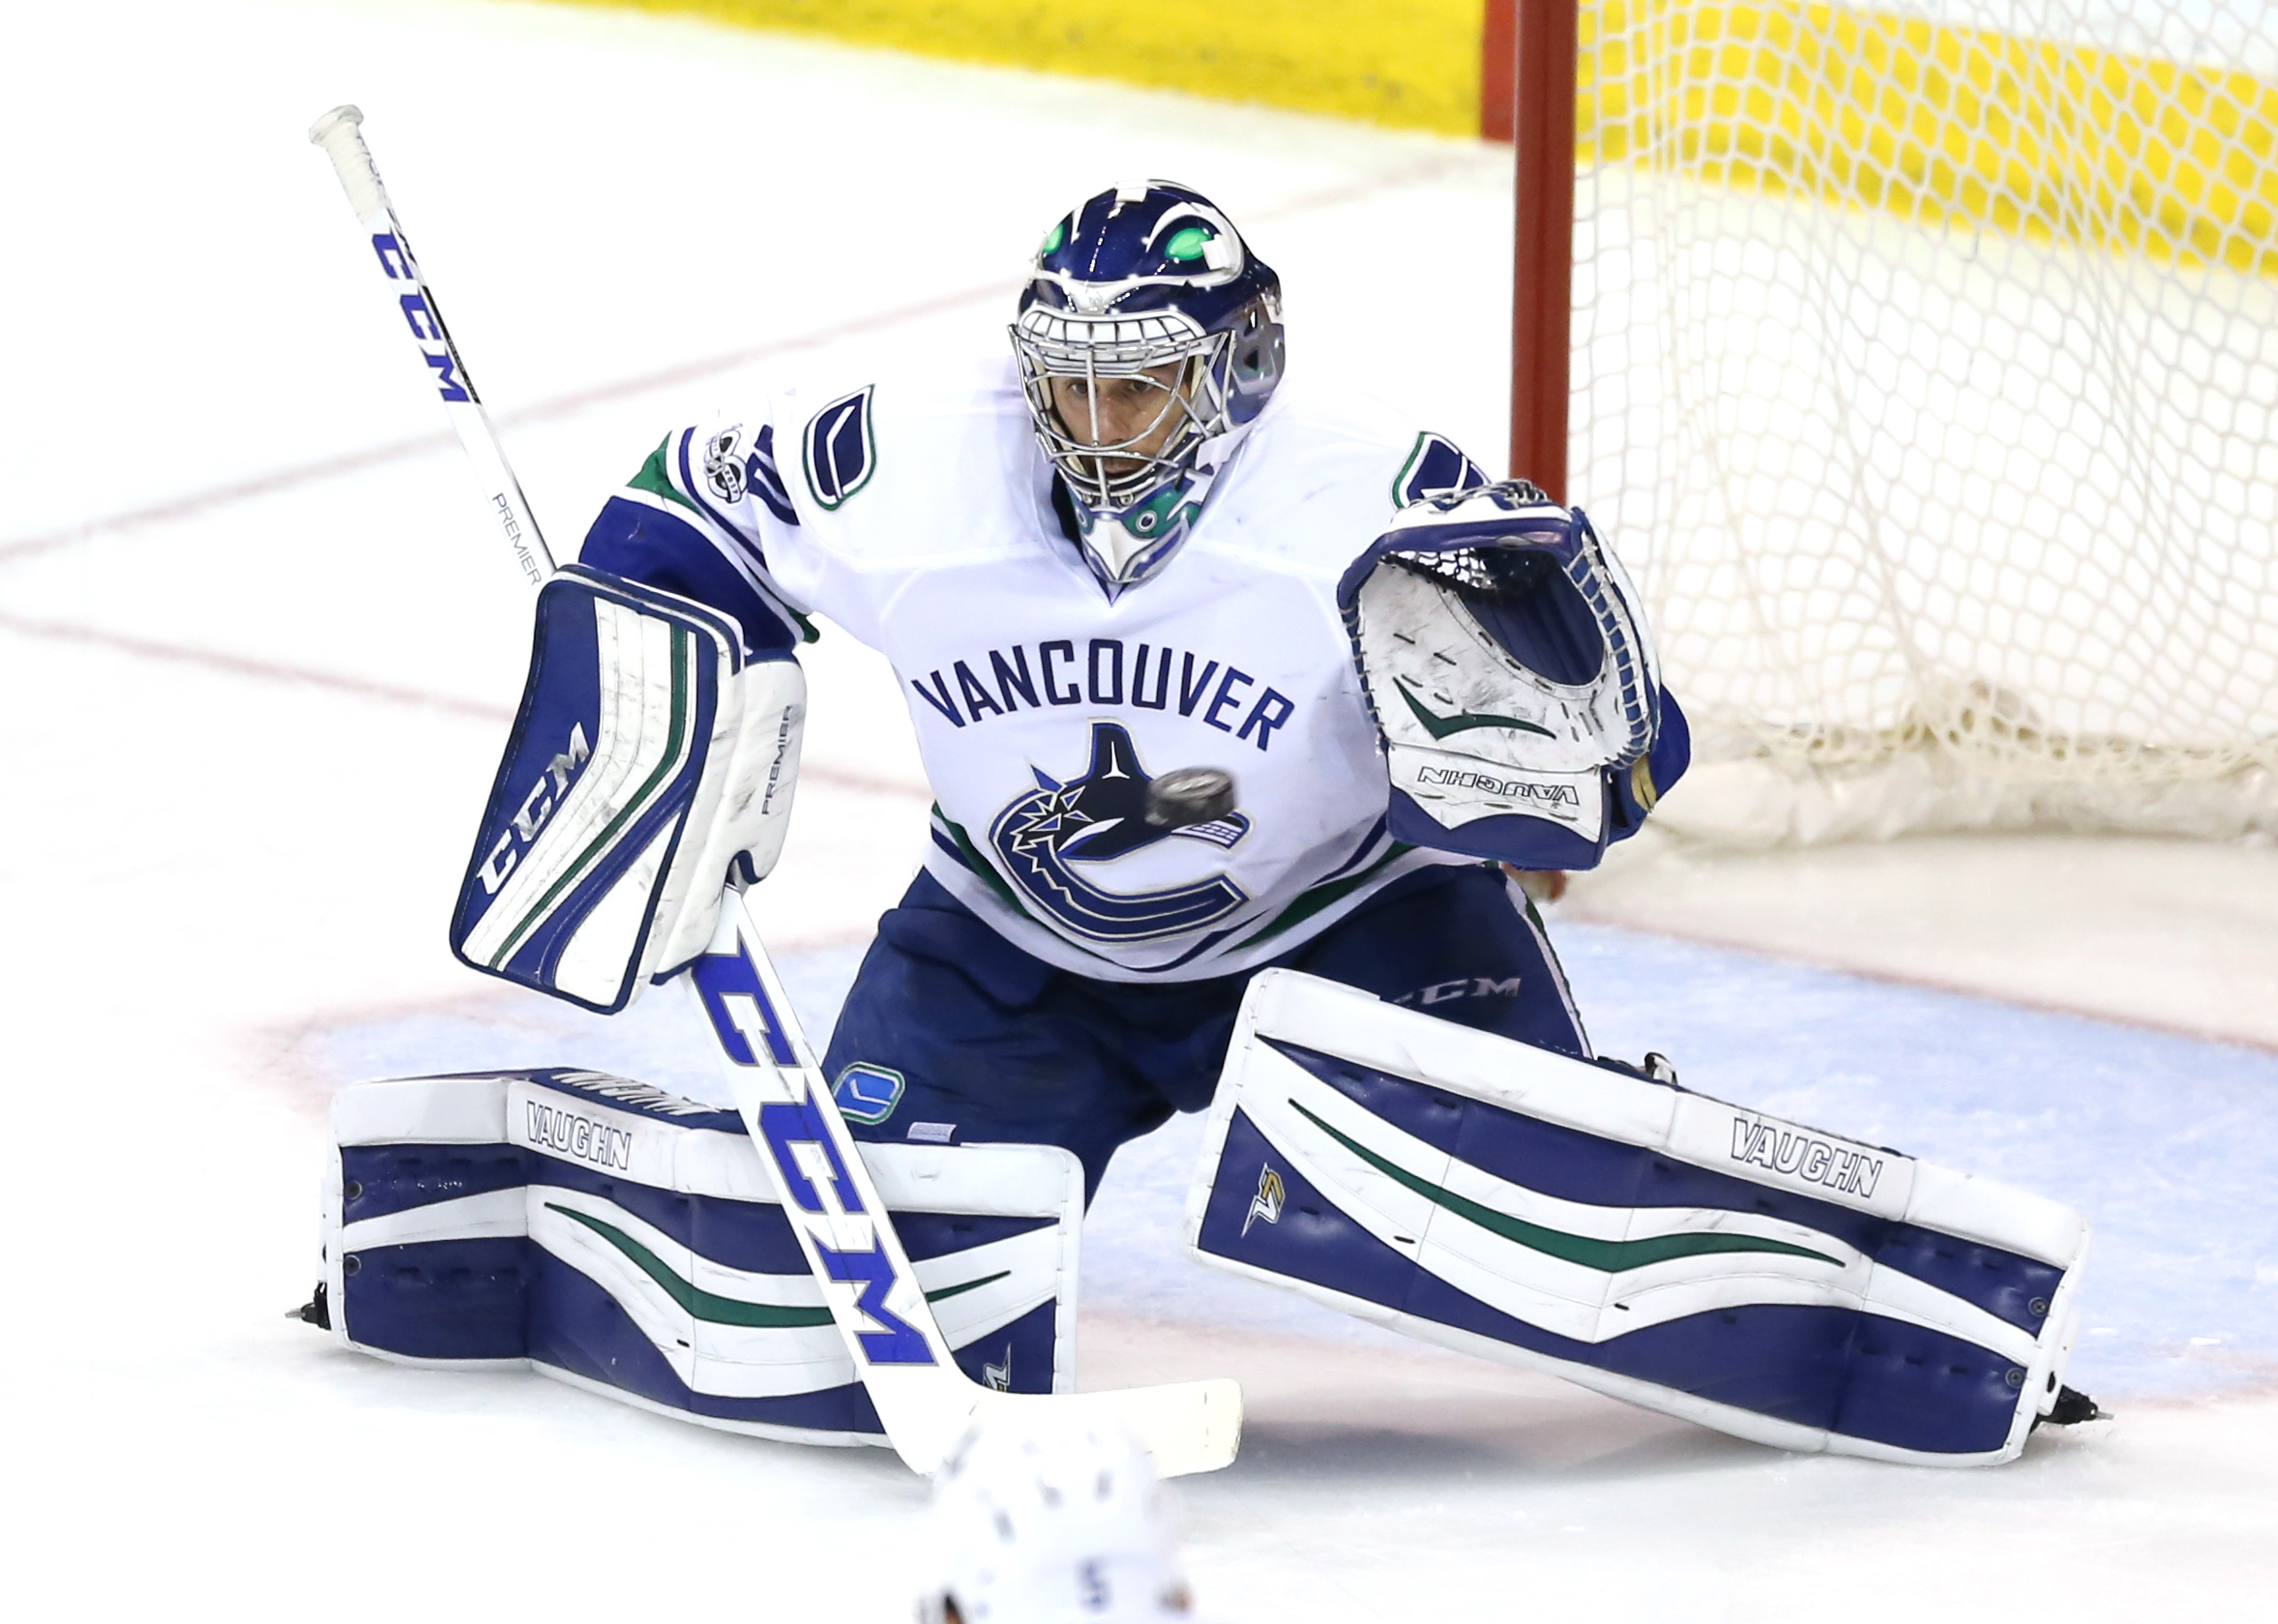 9973191-nhl-vancouver-canucks-at-winnipeg-jets